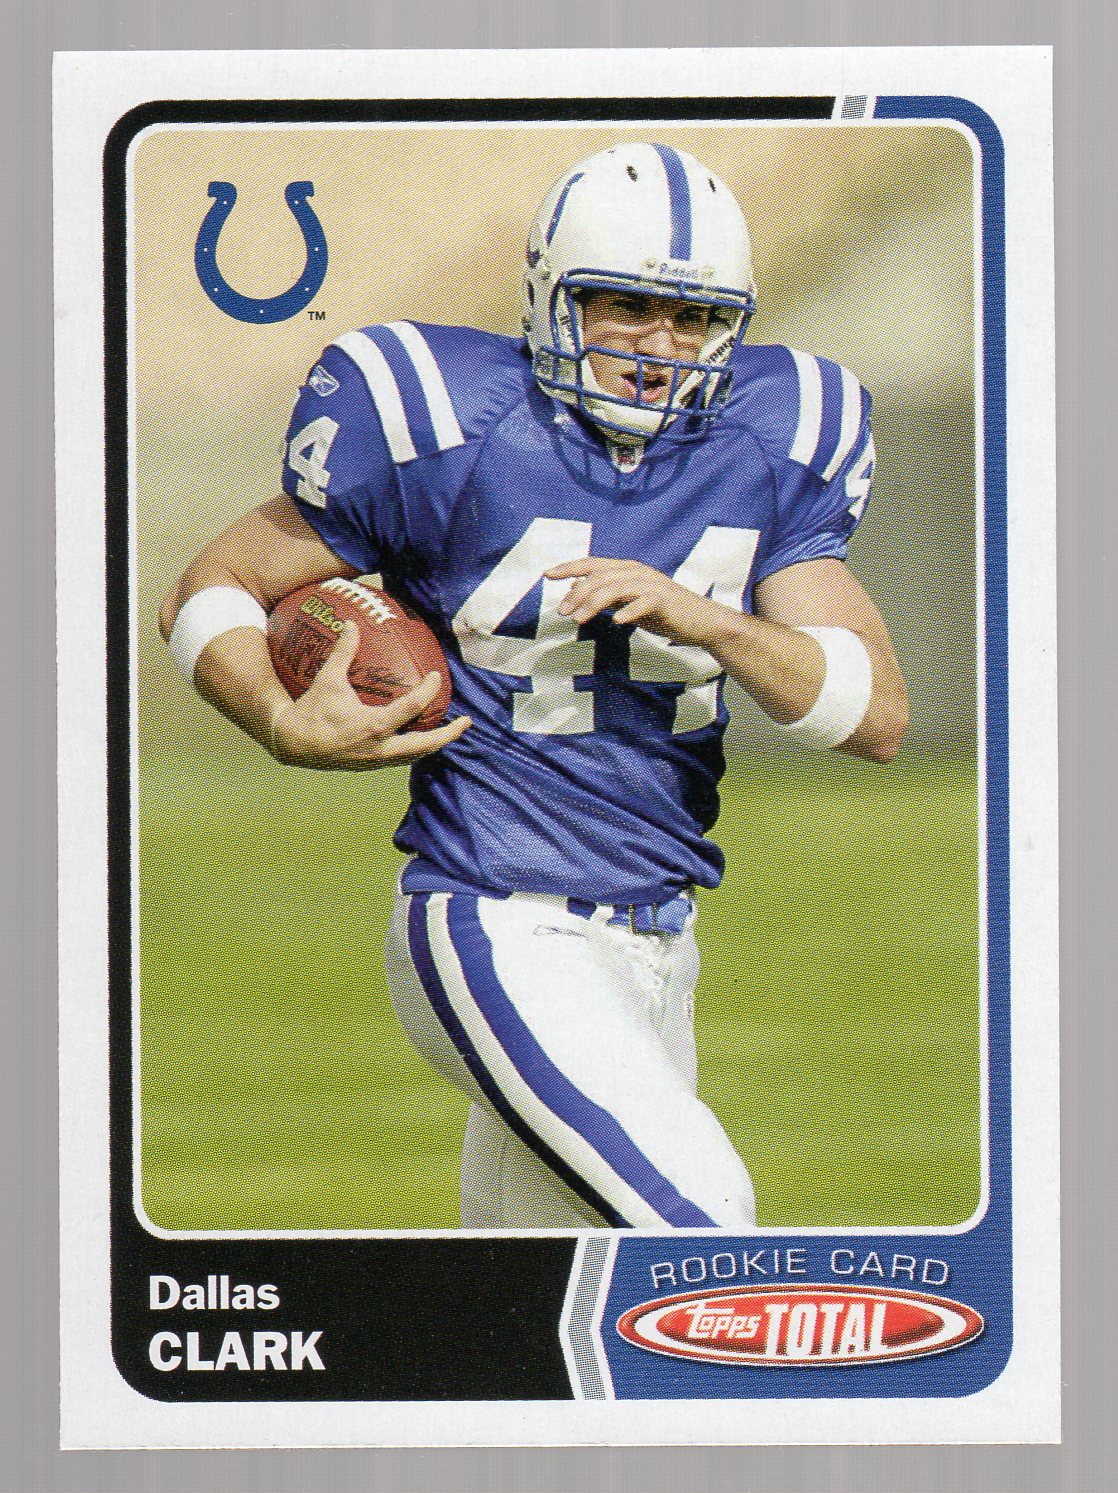 2003 Topps Total #547 Dallas Clark RC